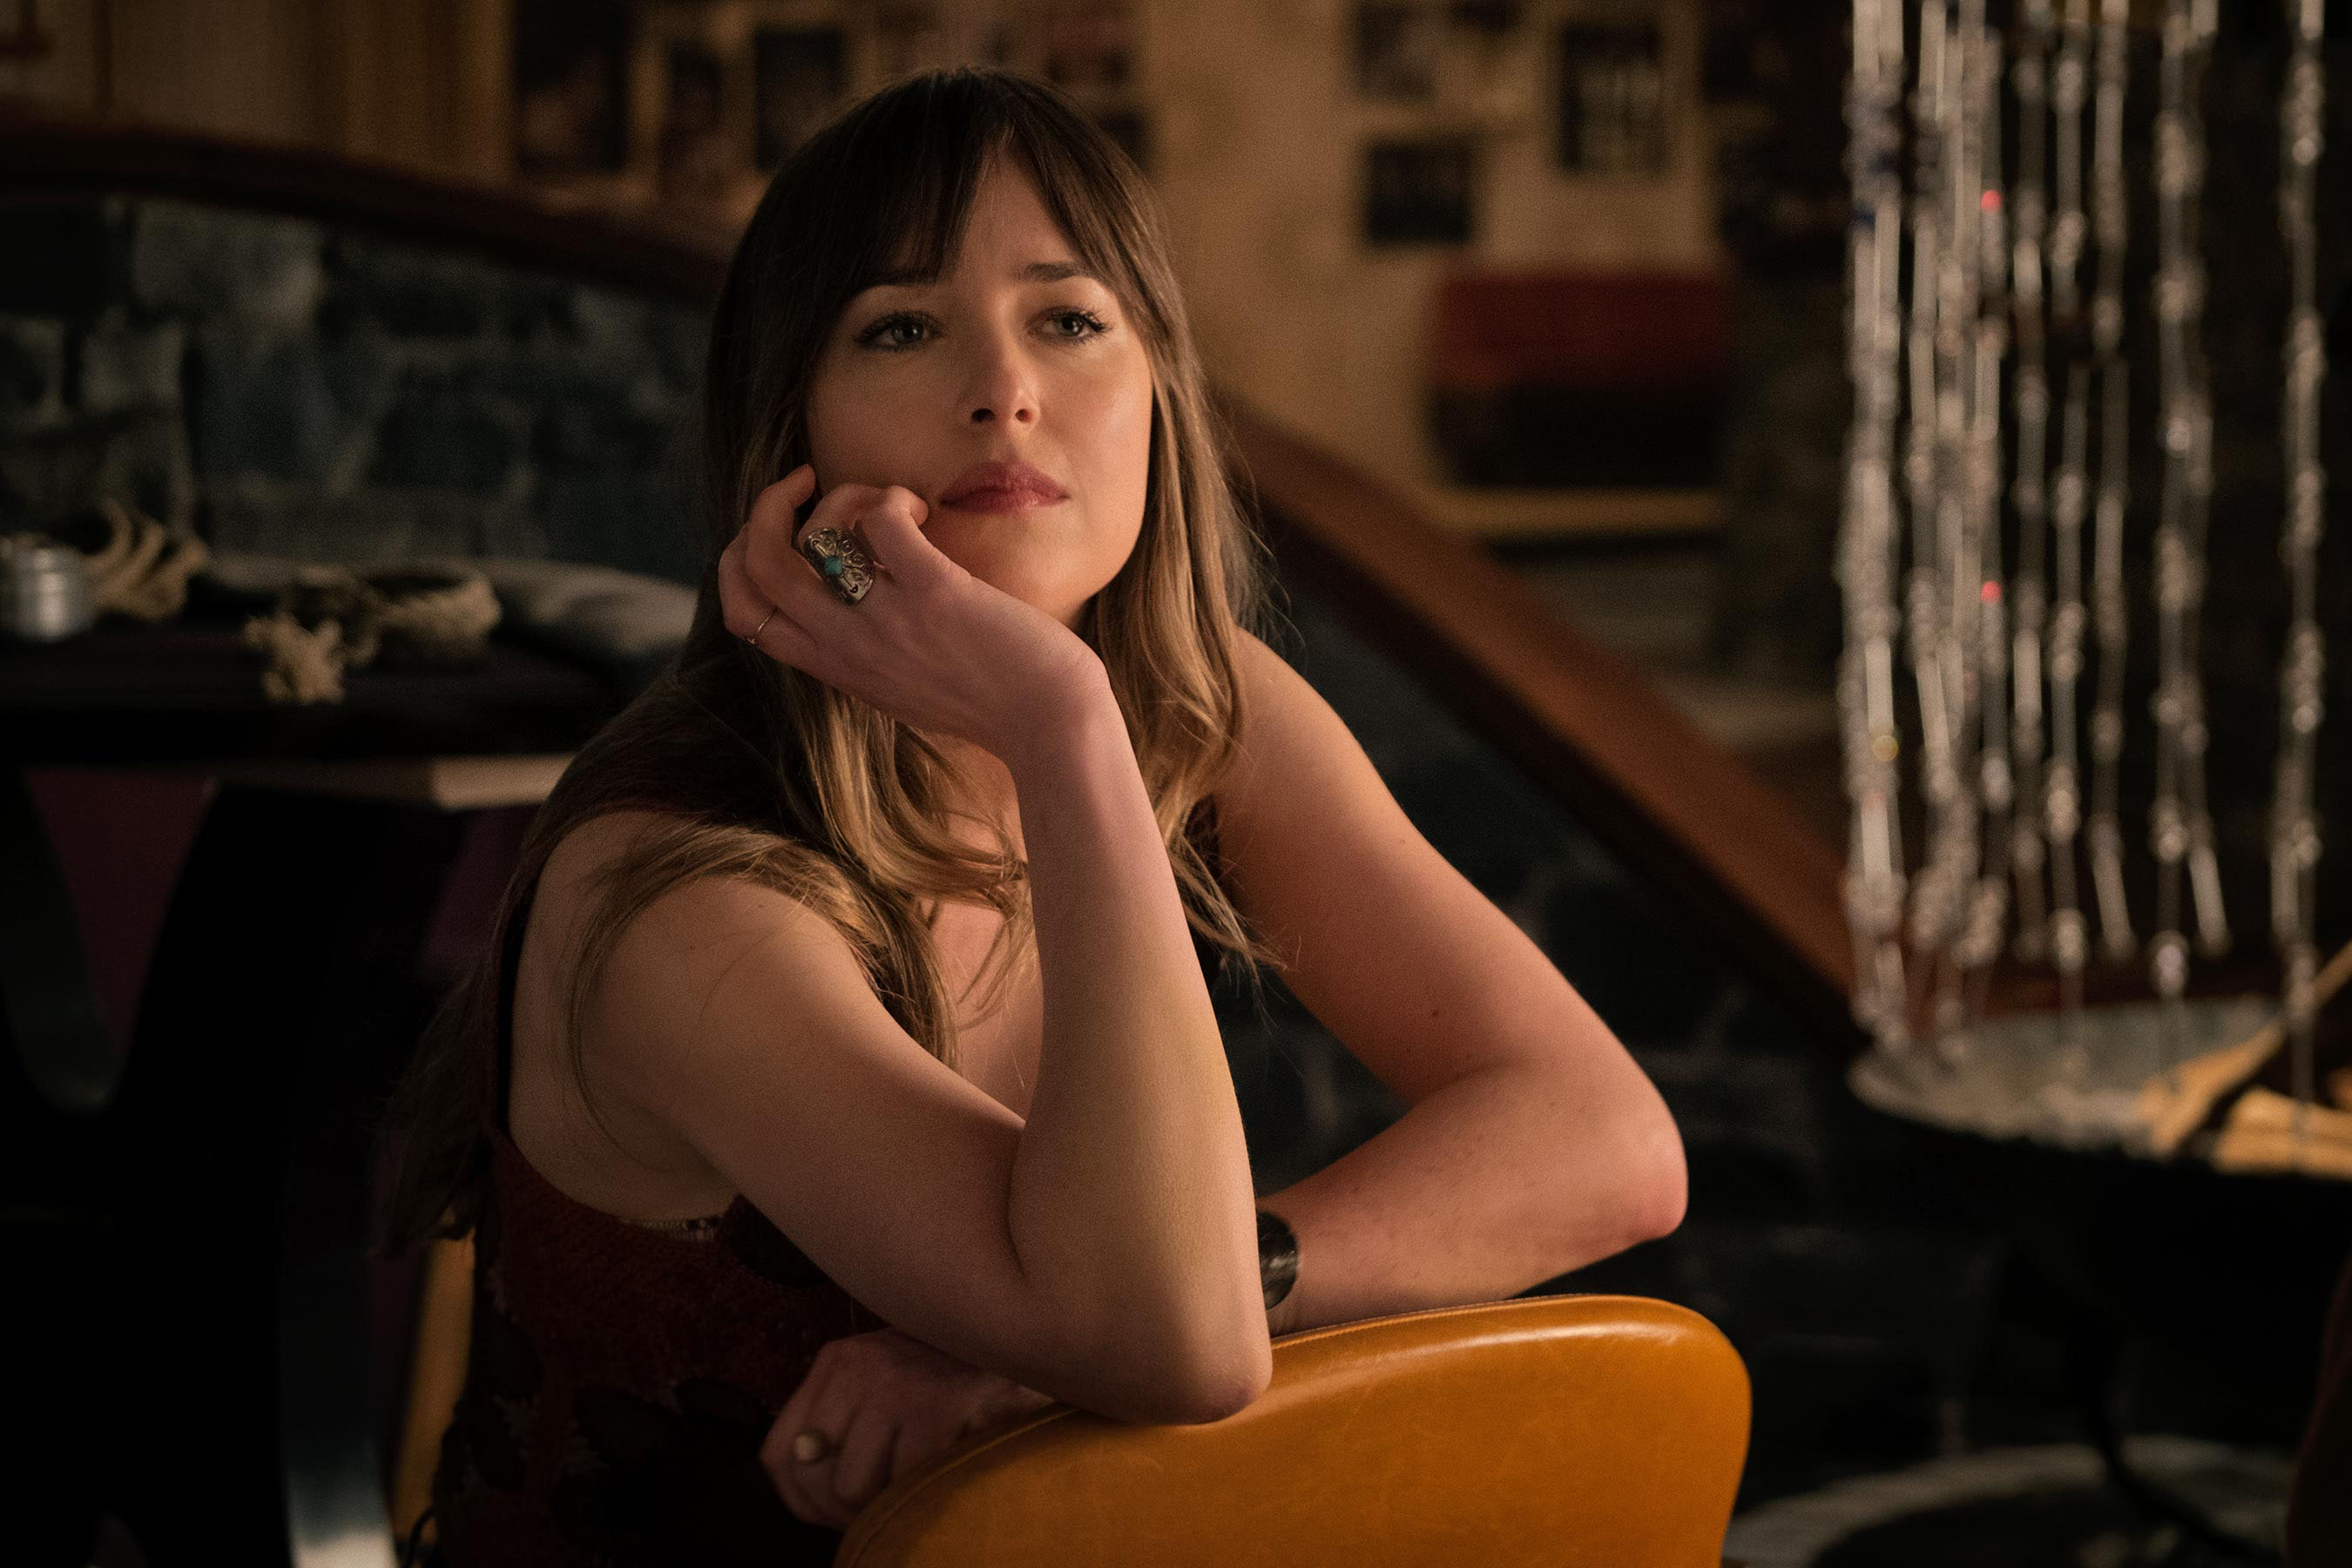 Fondos de pantalla Dakota Johnson 2021